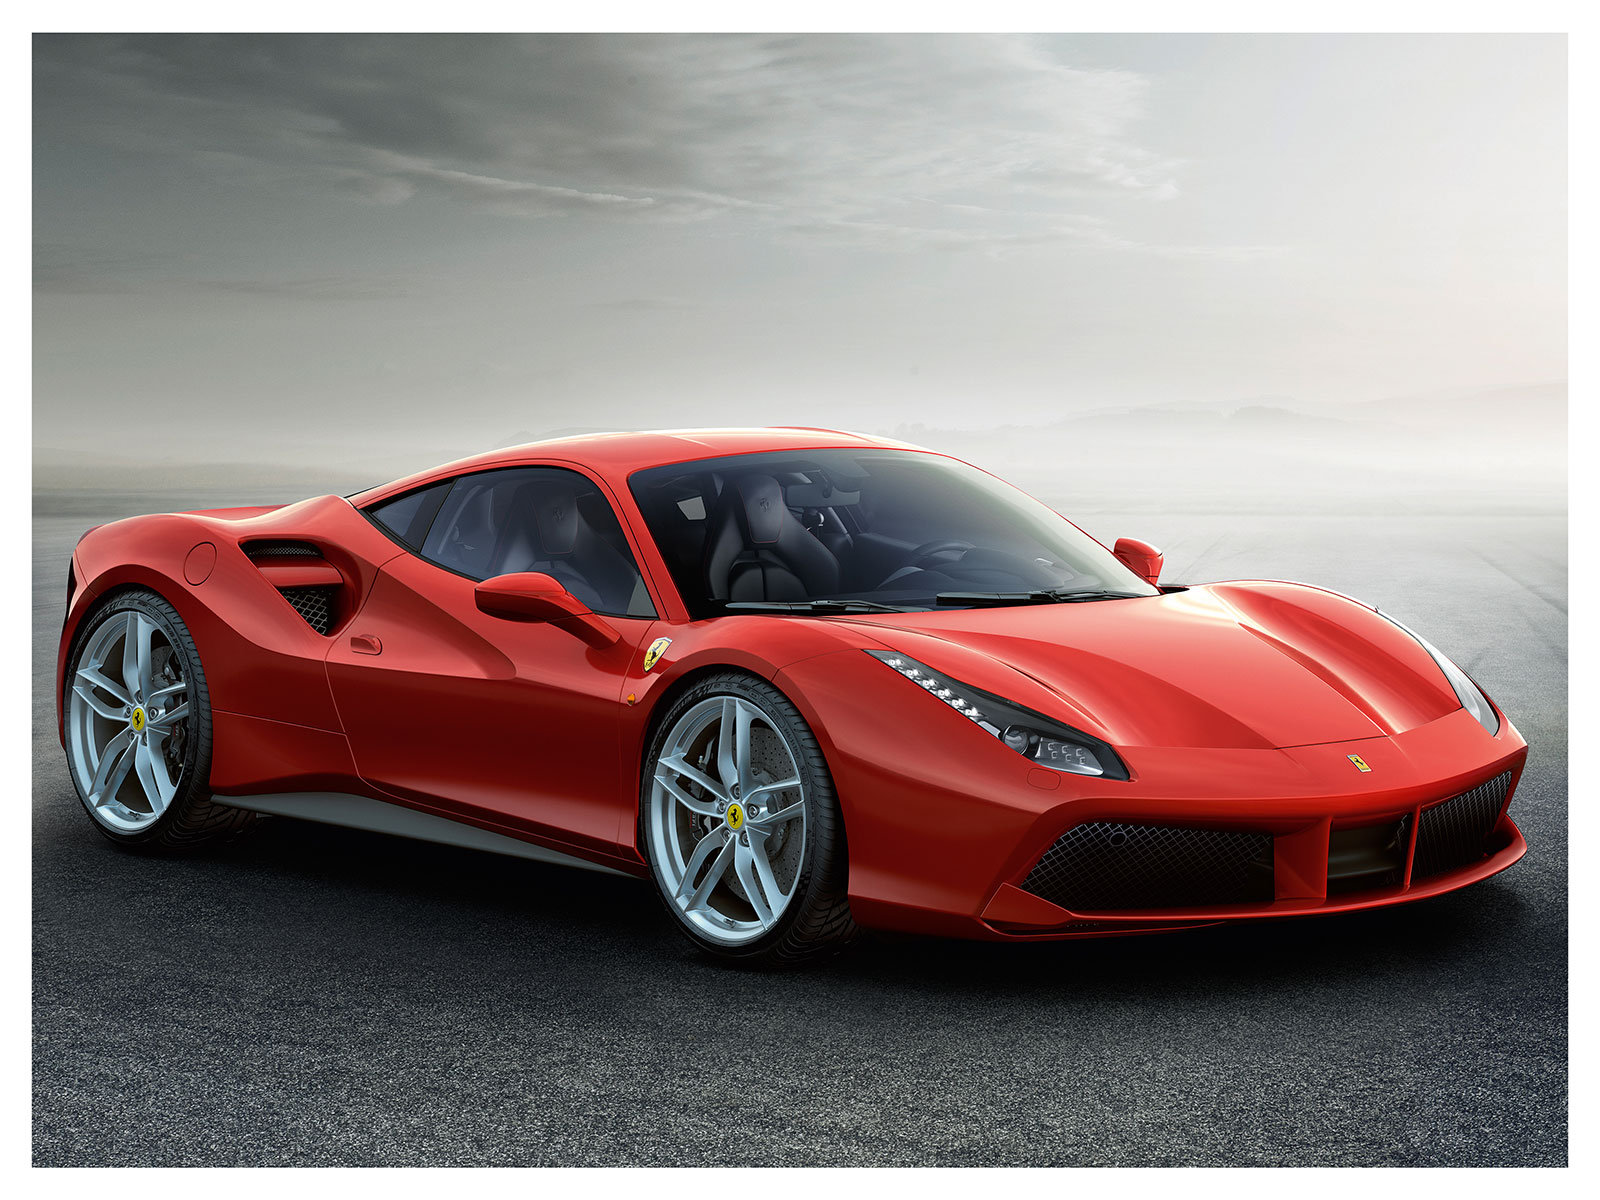 The new Ferrari 488 GTB